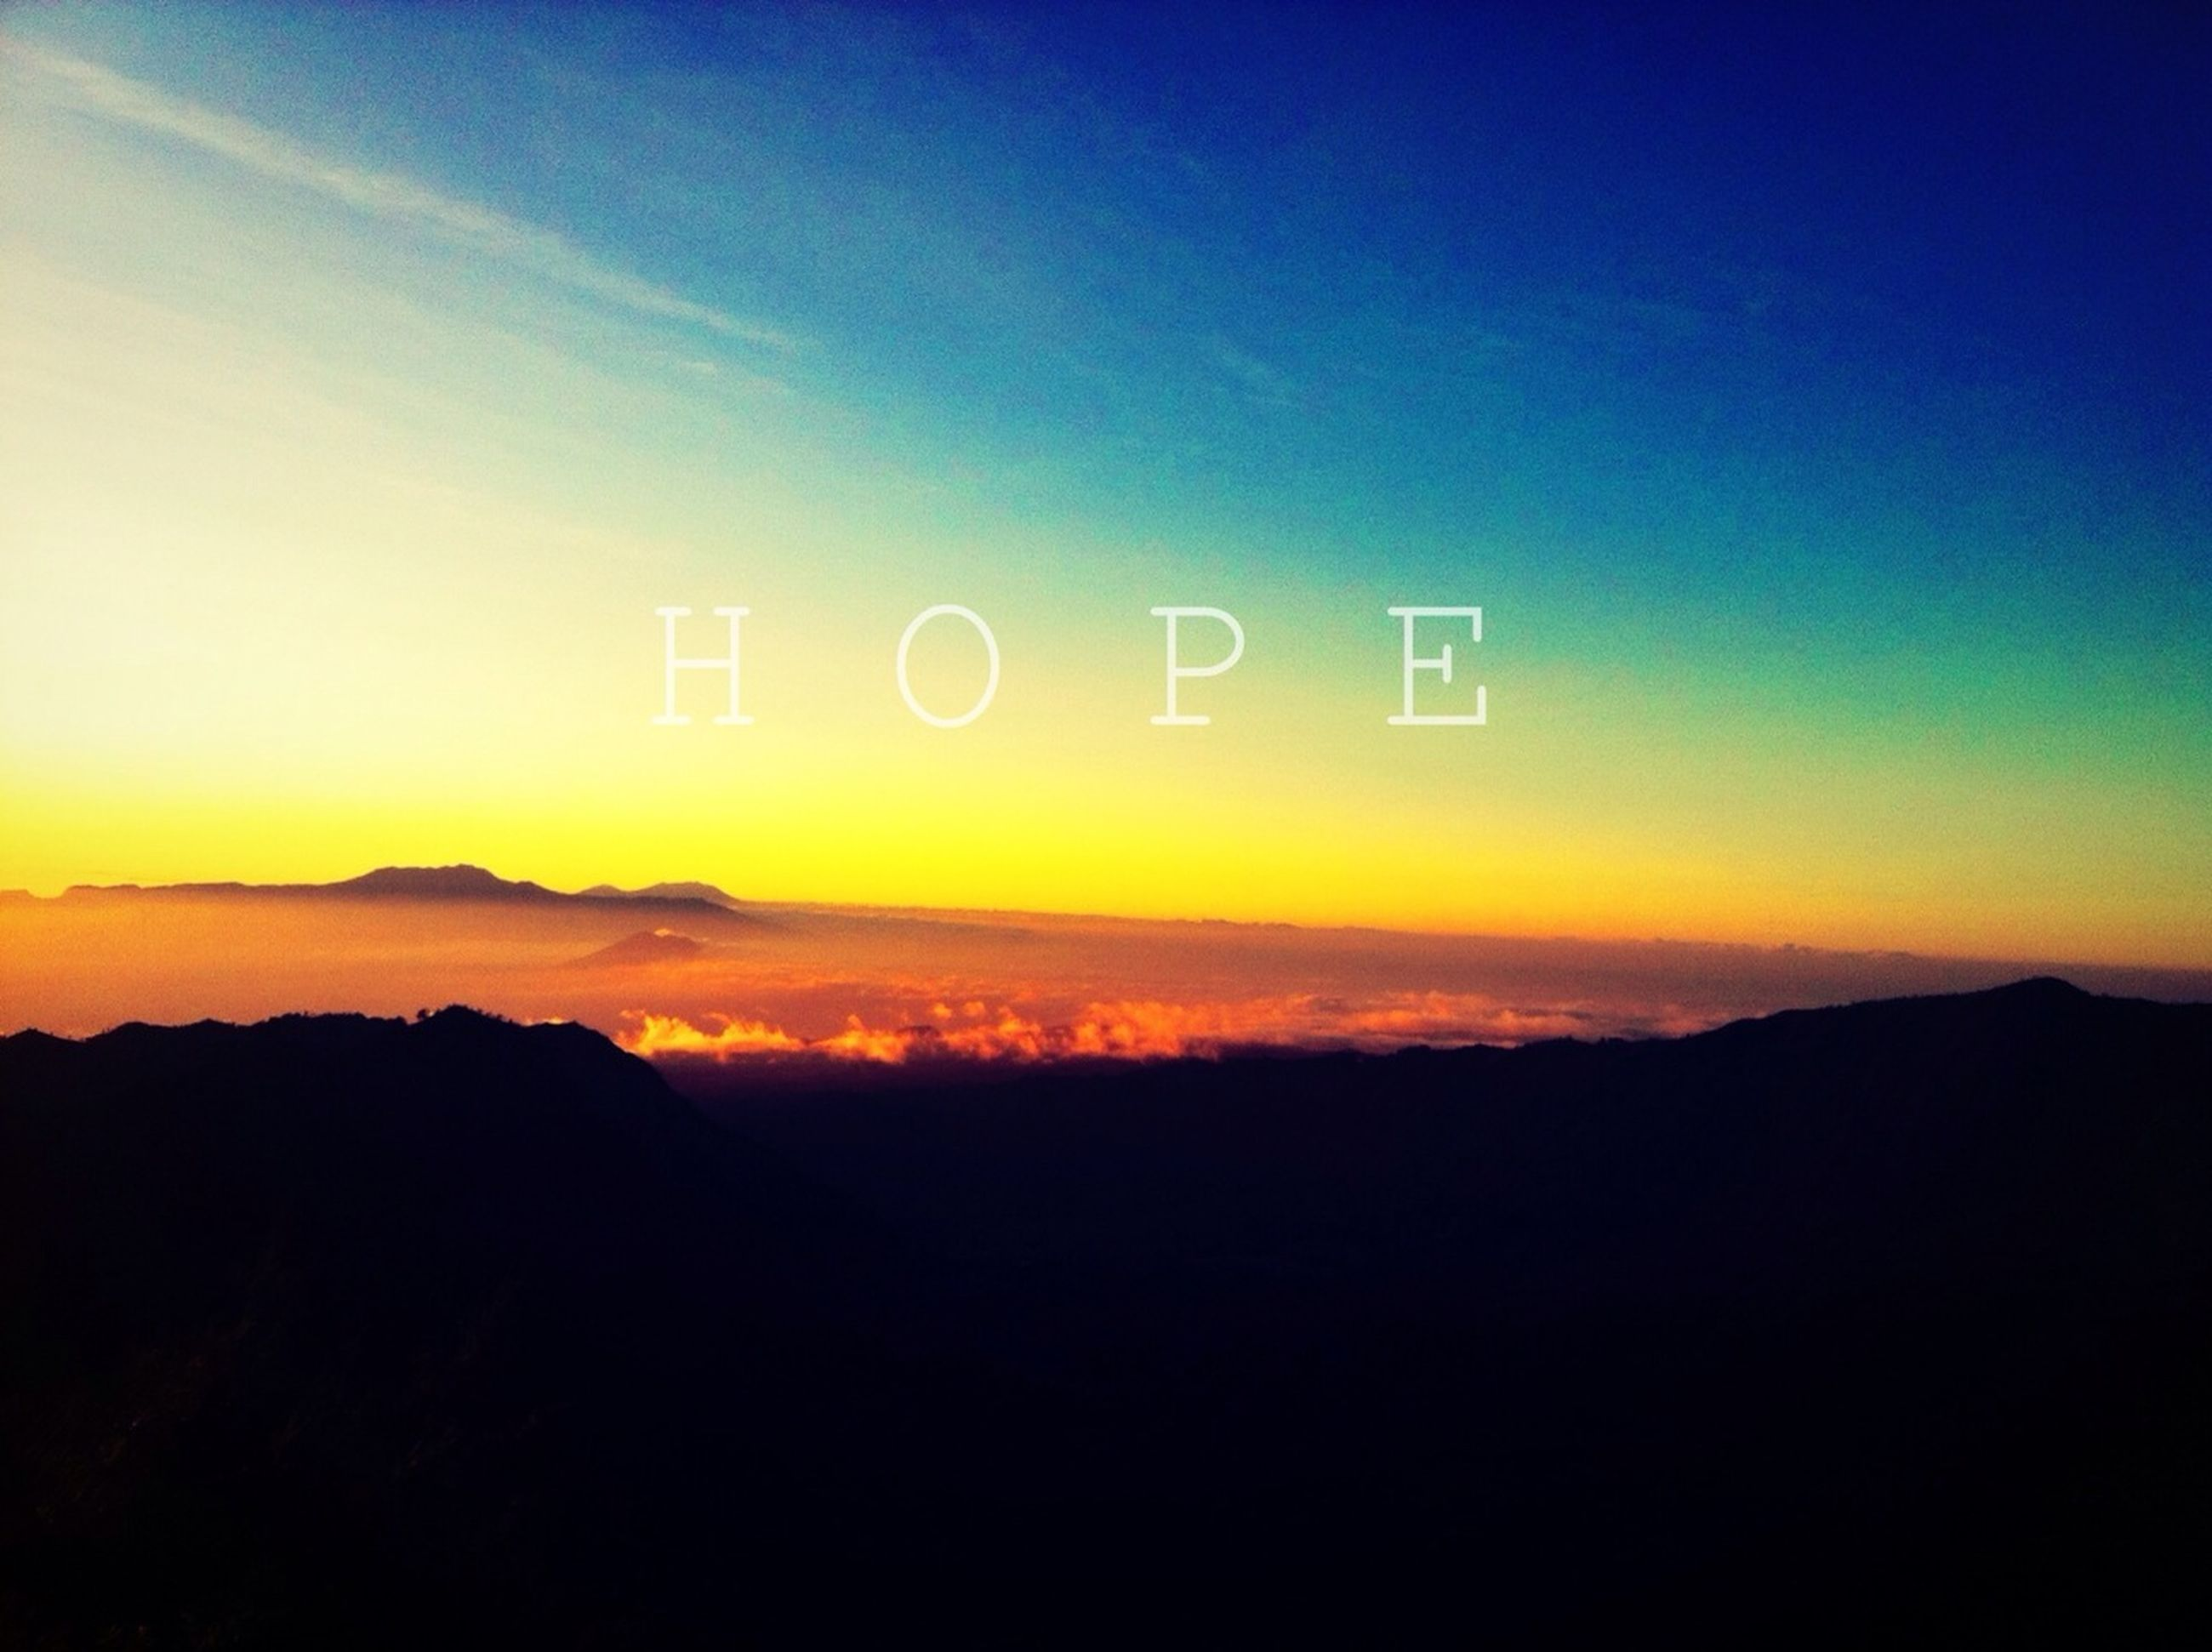 sunset, silhouette, scenics, beauty in nature, tranquil scene, tranquility, copy space, sky, mountain, text, nature, communication, idyllic, western script, orange color, dusk, landscape, outdoors, no people, dark